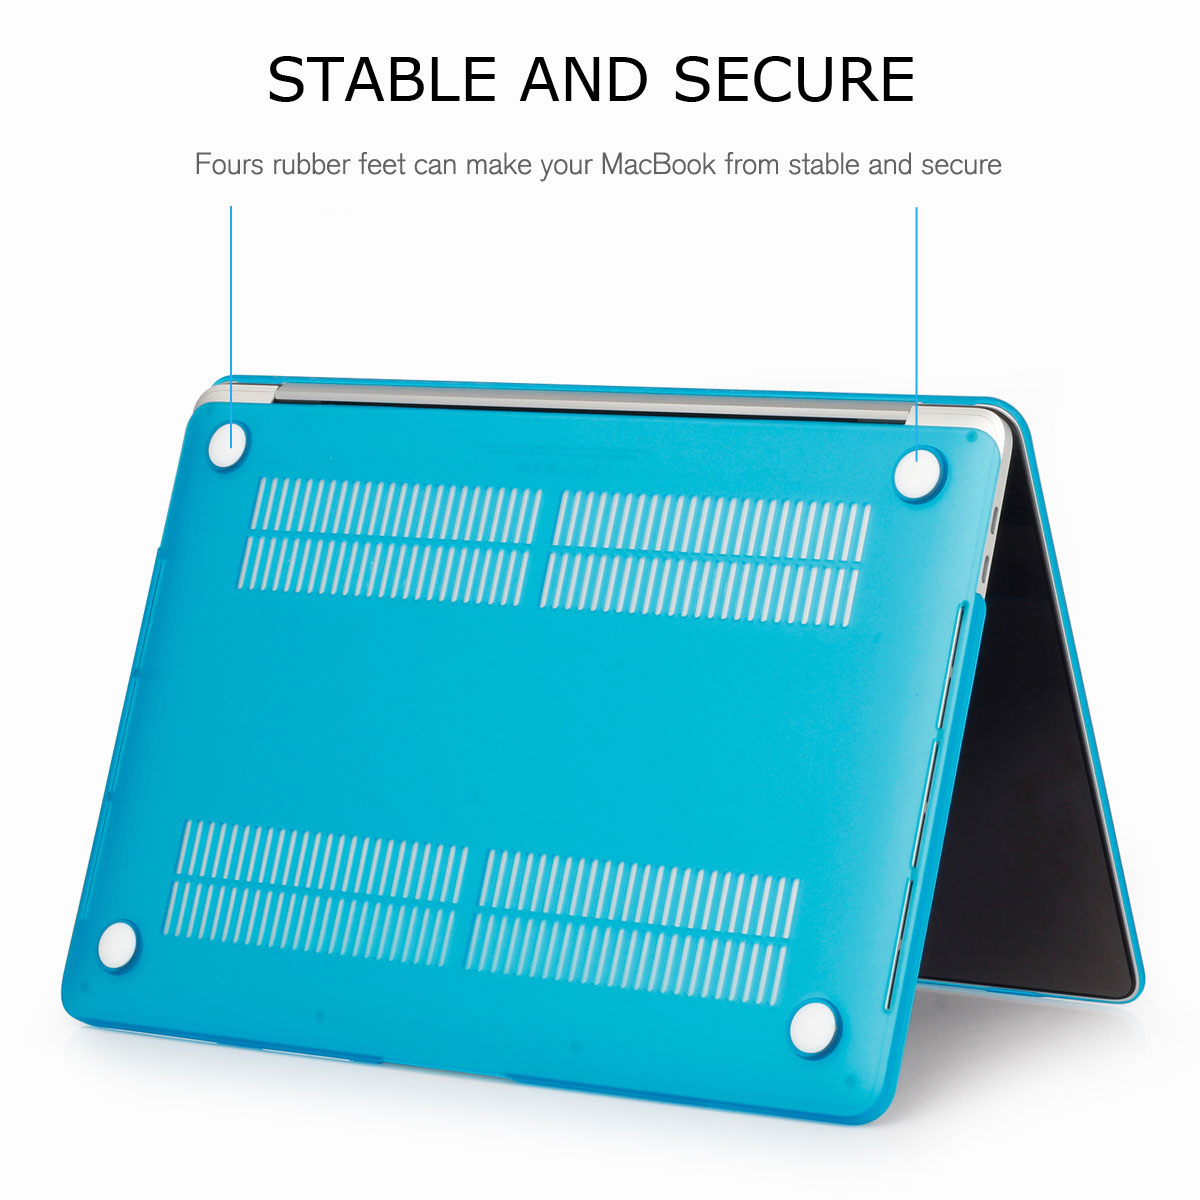 Shockproof-Rubberized-Matte-Hard-Case-Cover-For-Macbook-13-034-15-034-Inch-A1286-A1278 thumbnail 83